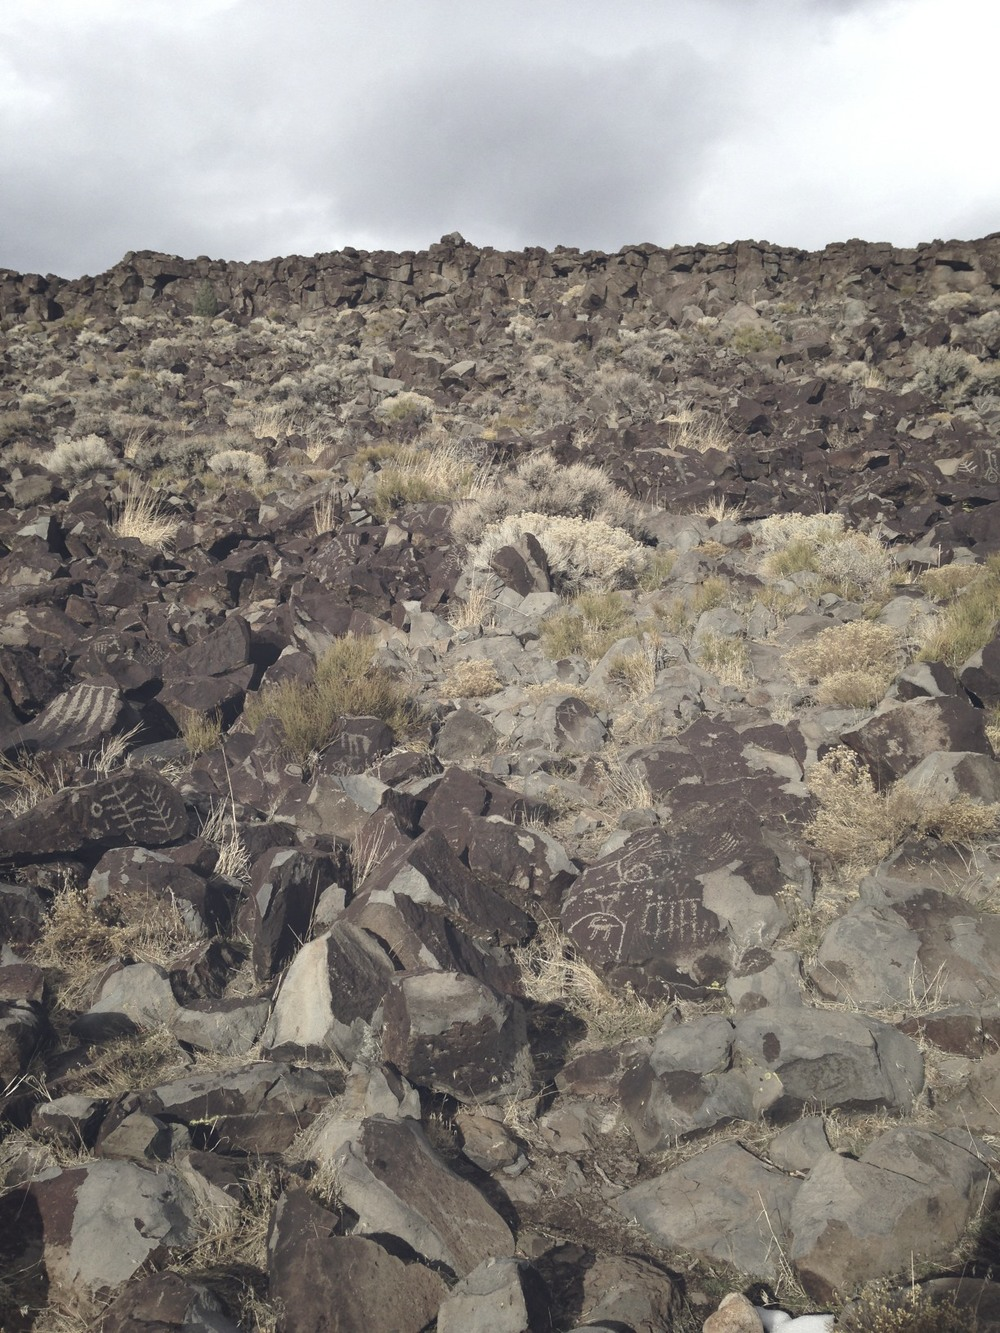 This is one view of the thousands of petroglyphs. Click the image to see a larger view.